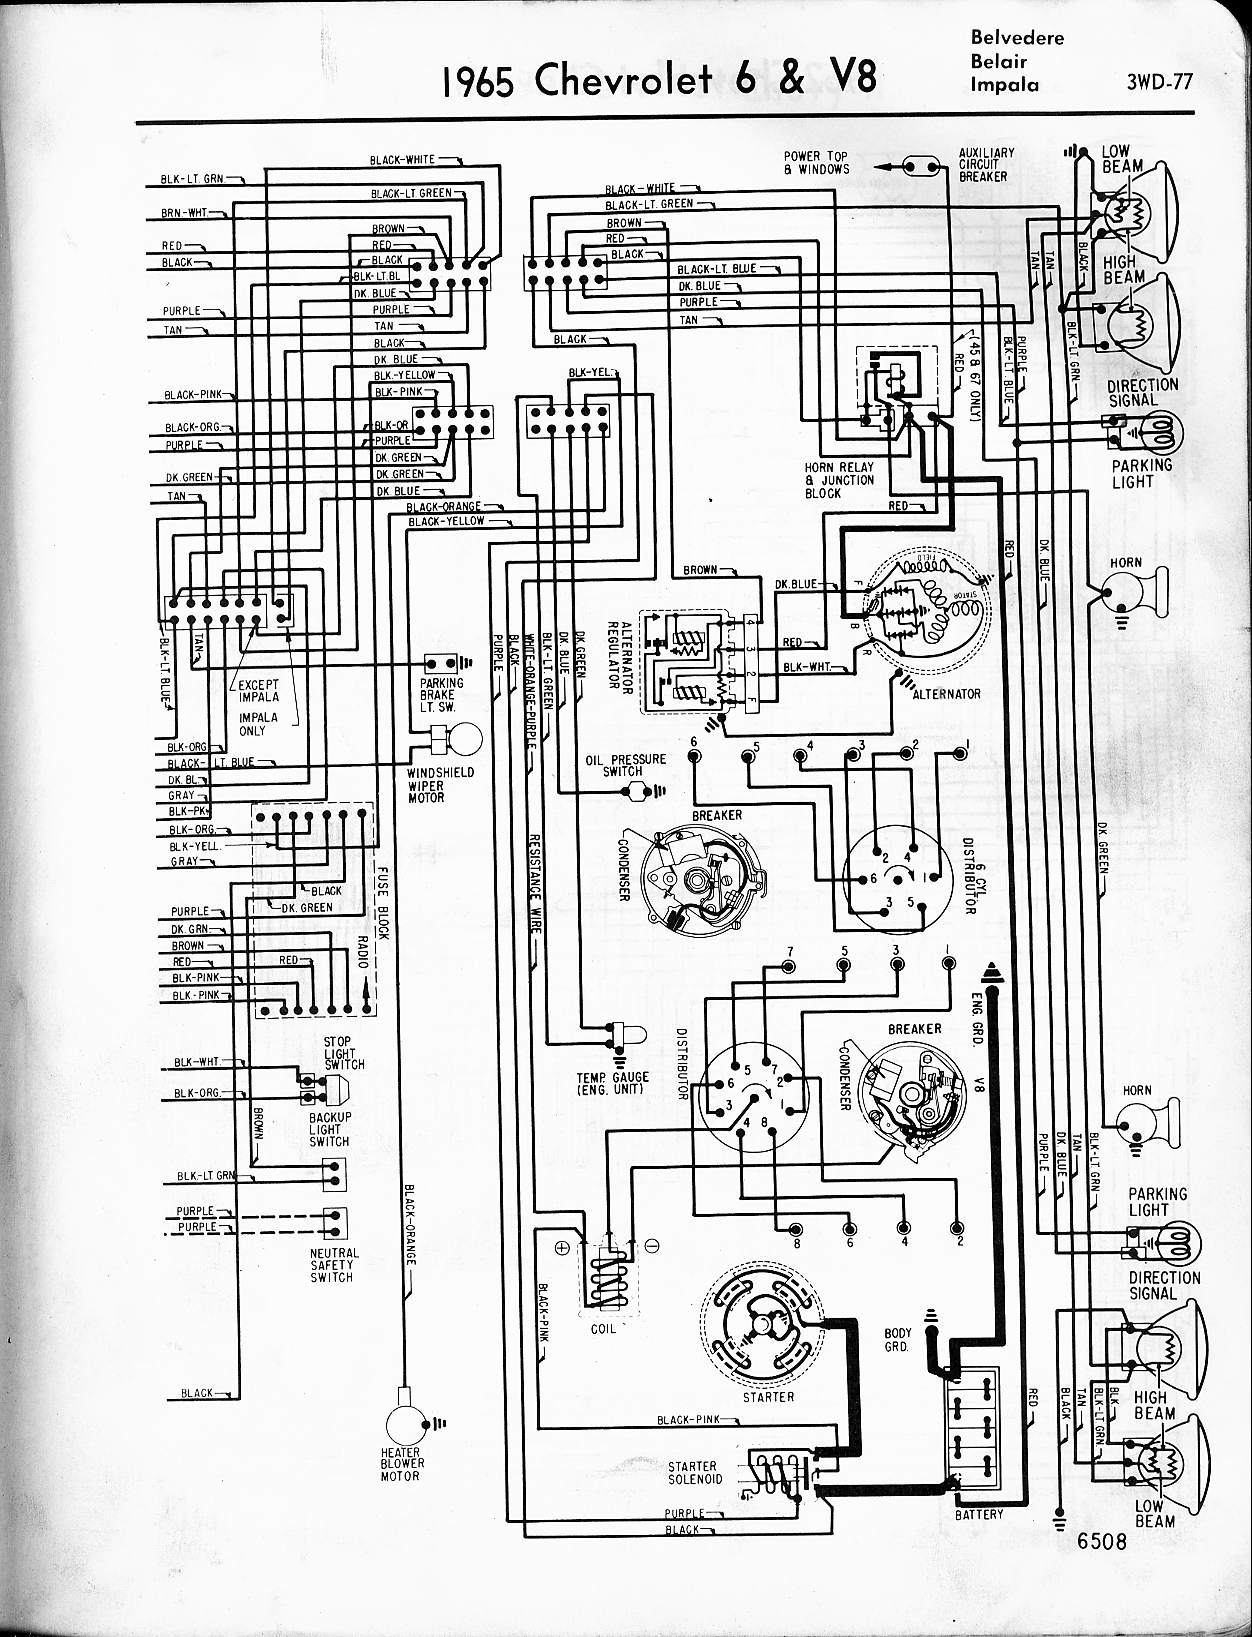 1985 chevy truck tilt steering column diagram Chevy Tahoe Repair Manual hight resolution of chevy diagrams rh wiring wizard 1985 chevrolet steering column wiring diagram gm